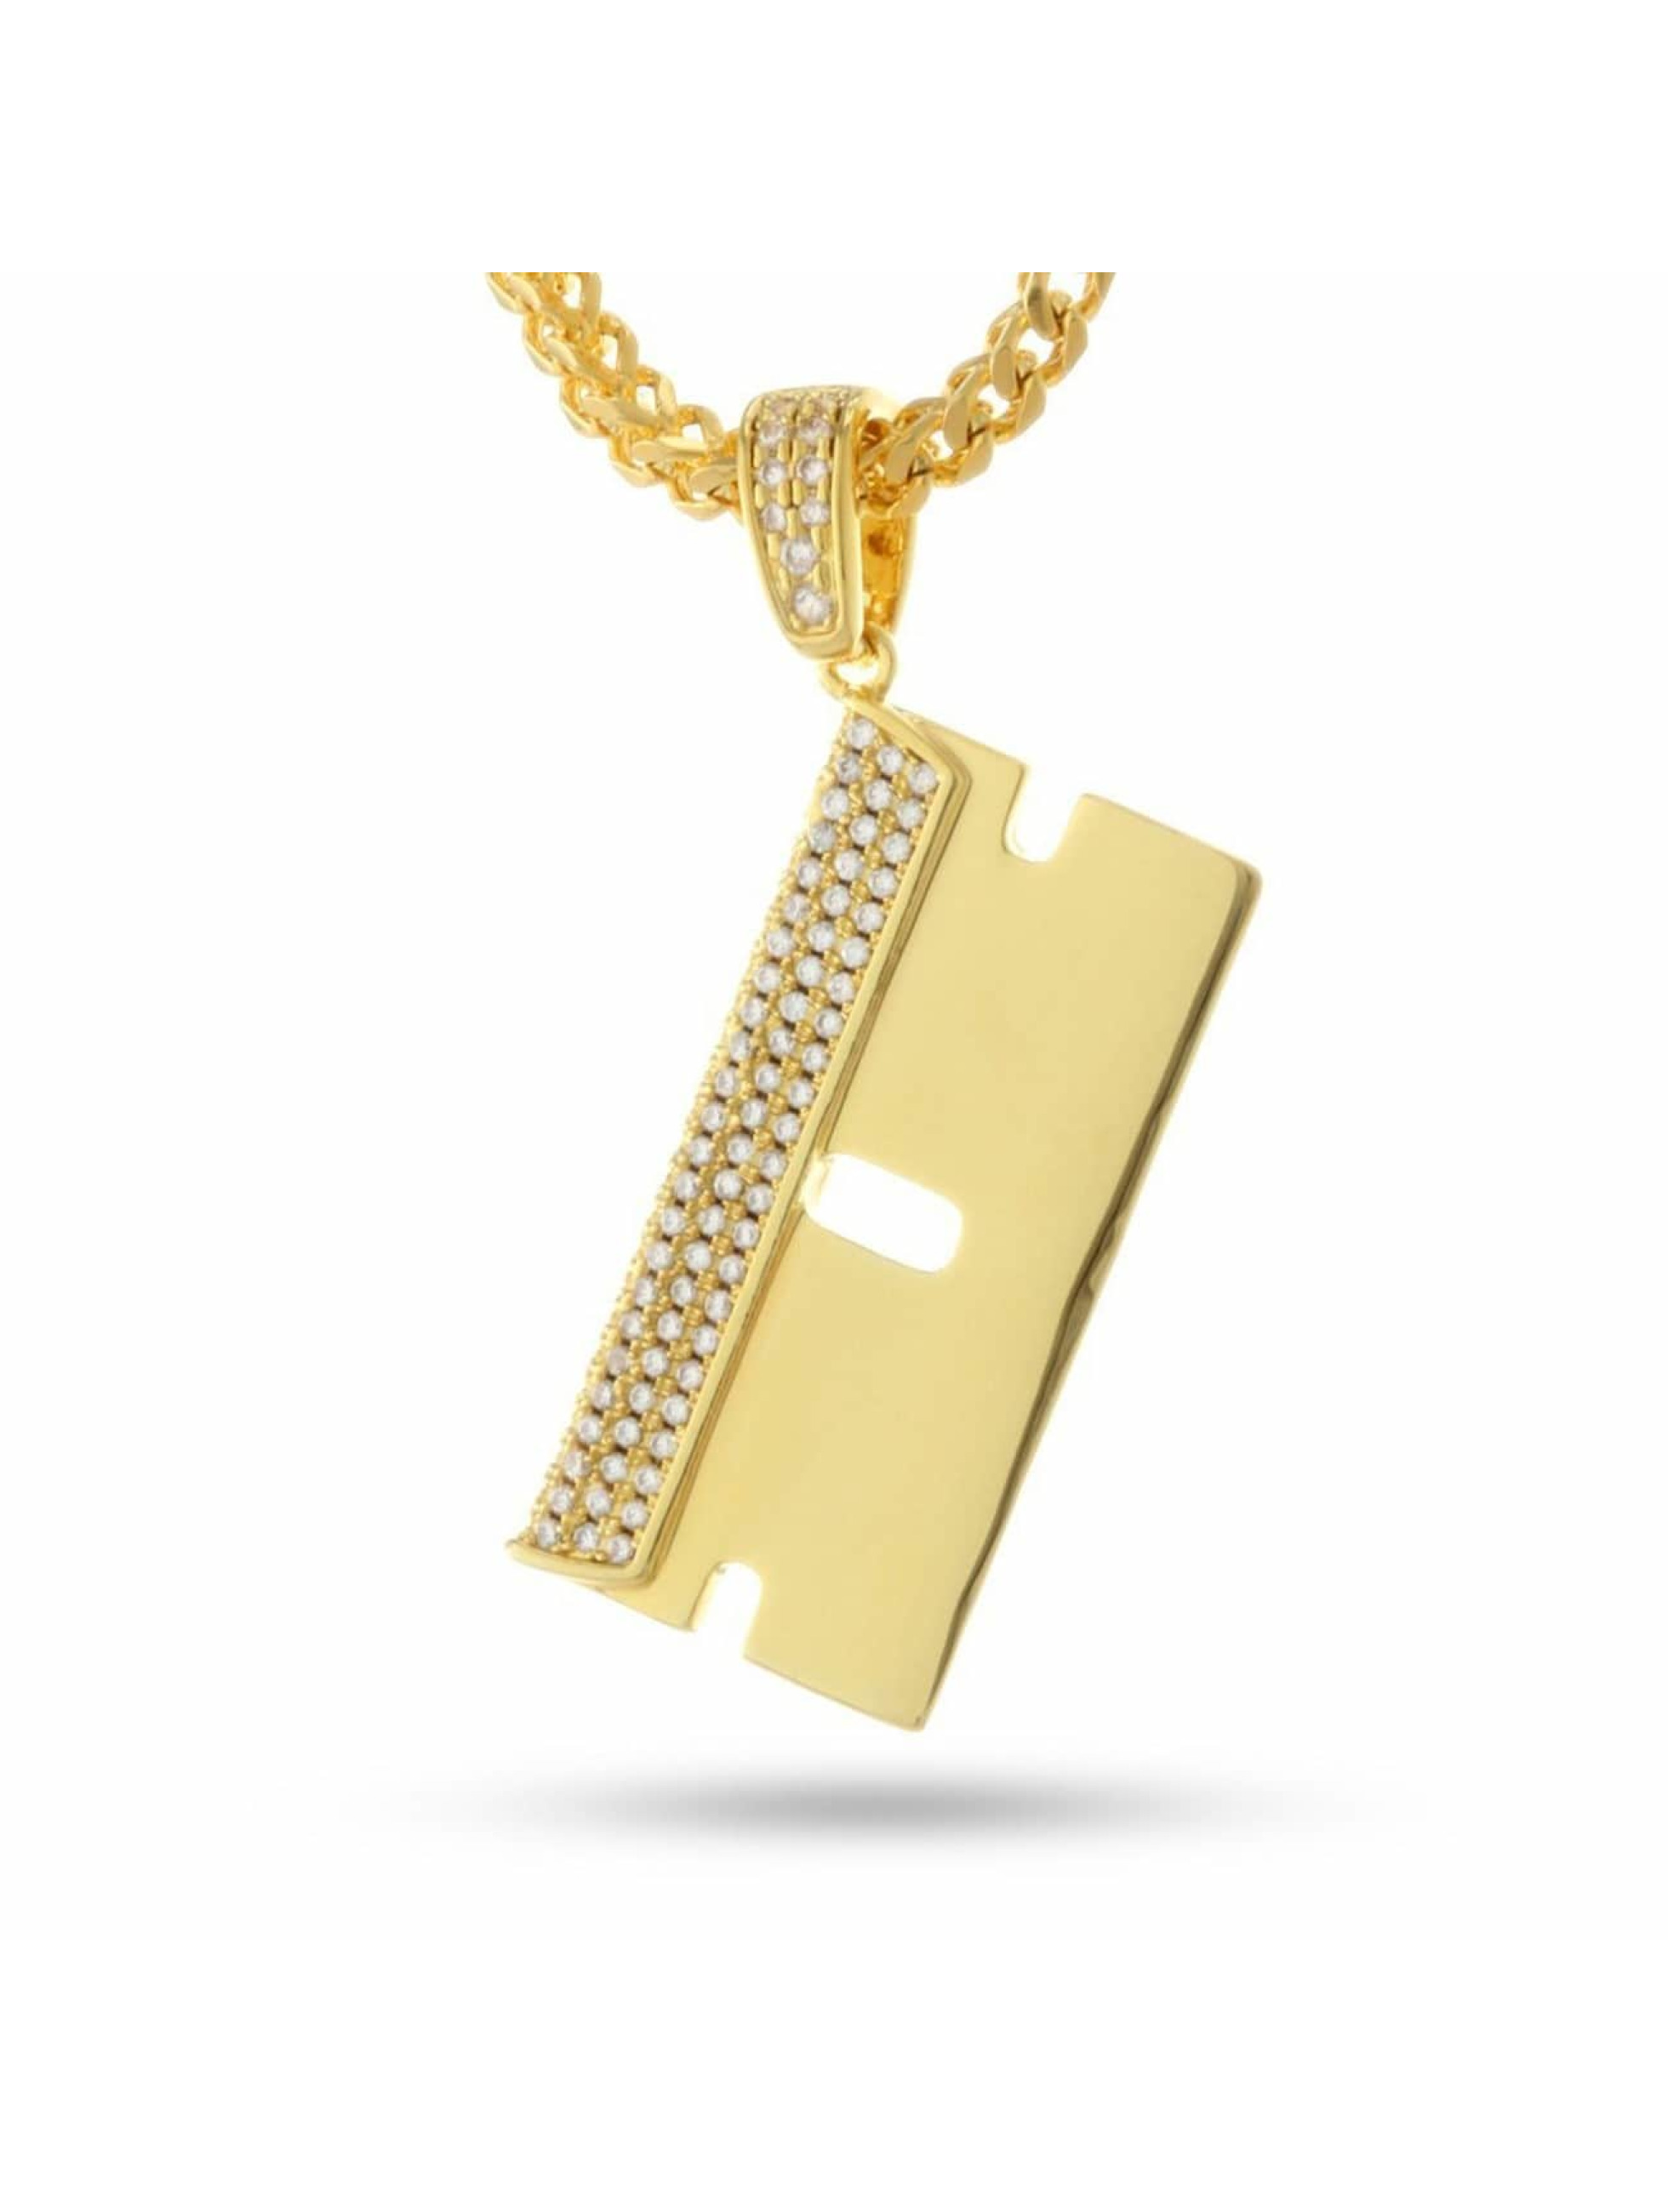 KING ICE Necklace Gold_Plated CZ Barber RZR Blade gold